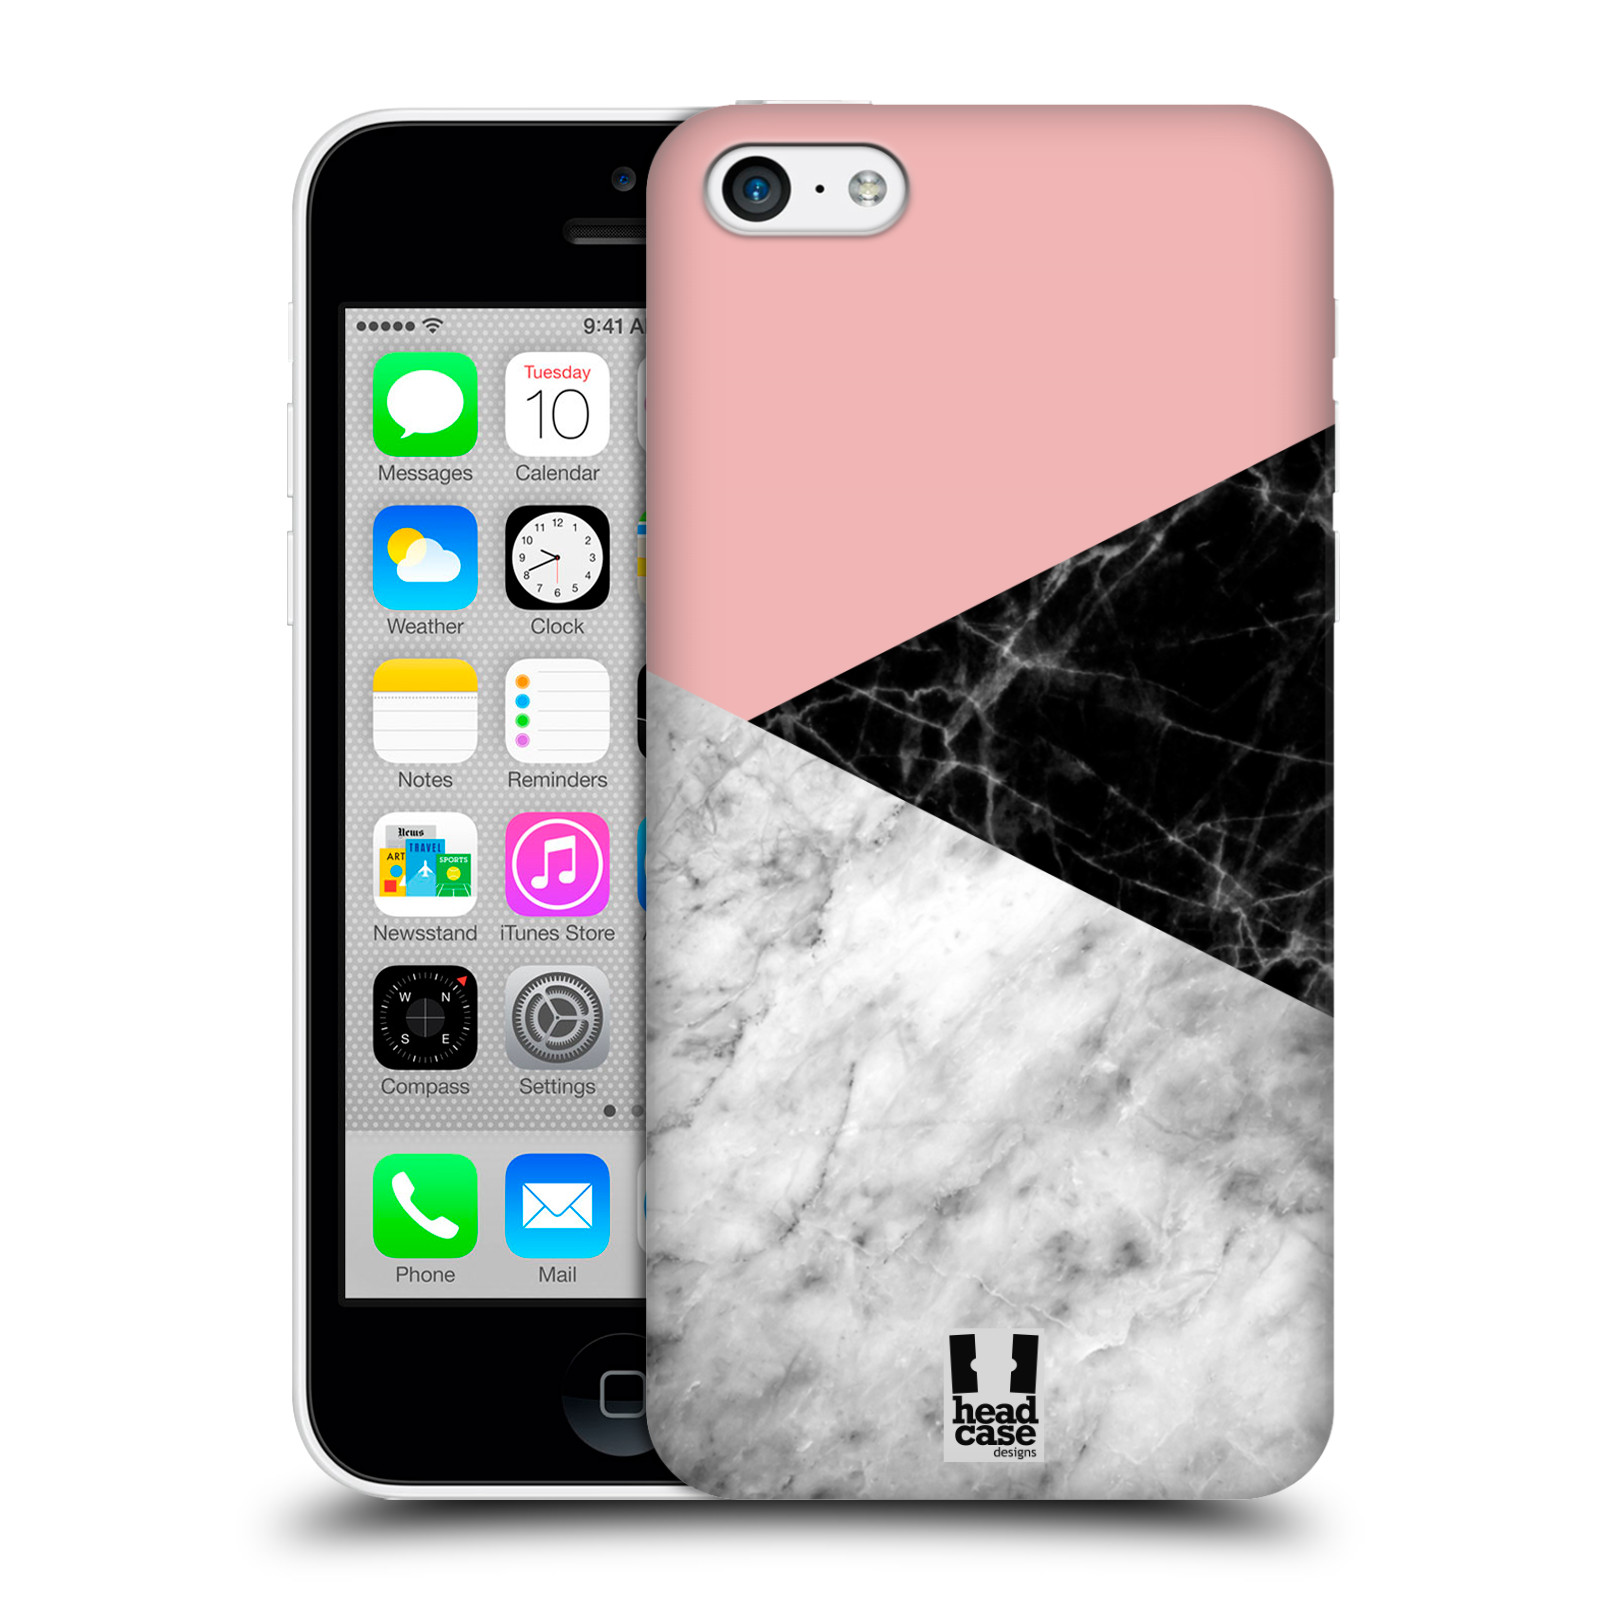 Plastové pouzdro na mobil Apple iPhone 5C - Head Case - Mramor mix